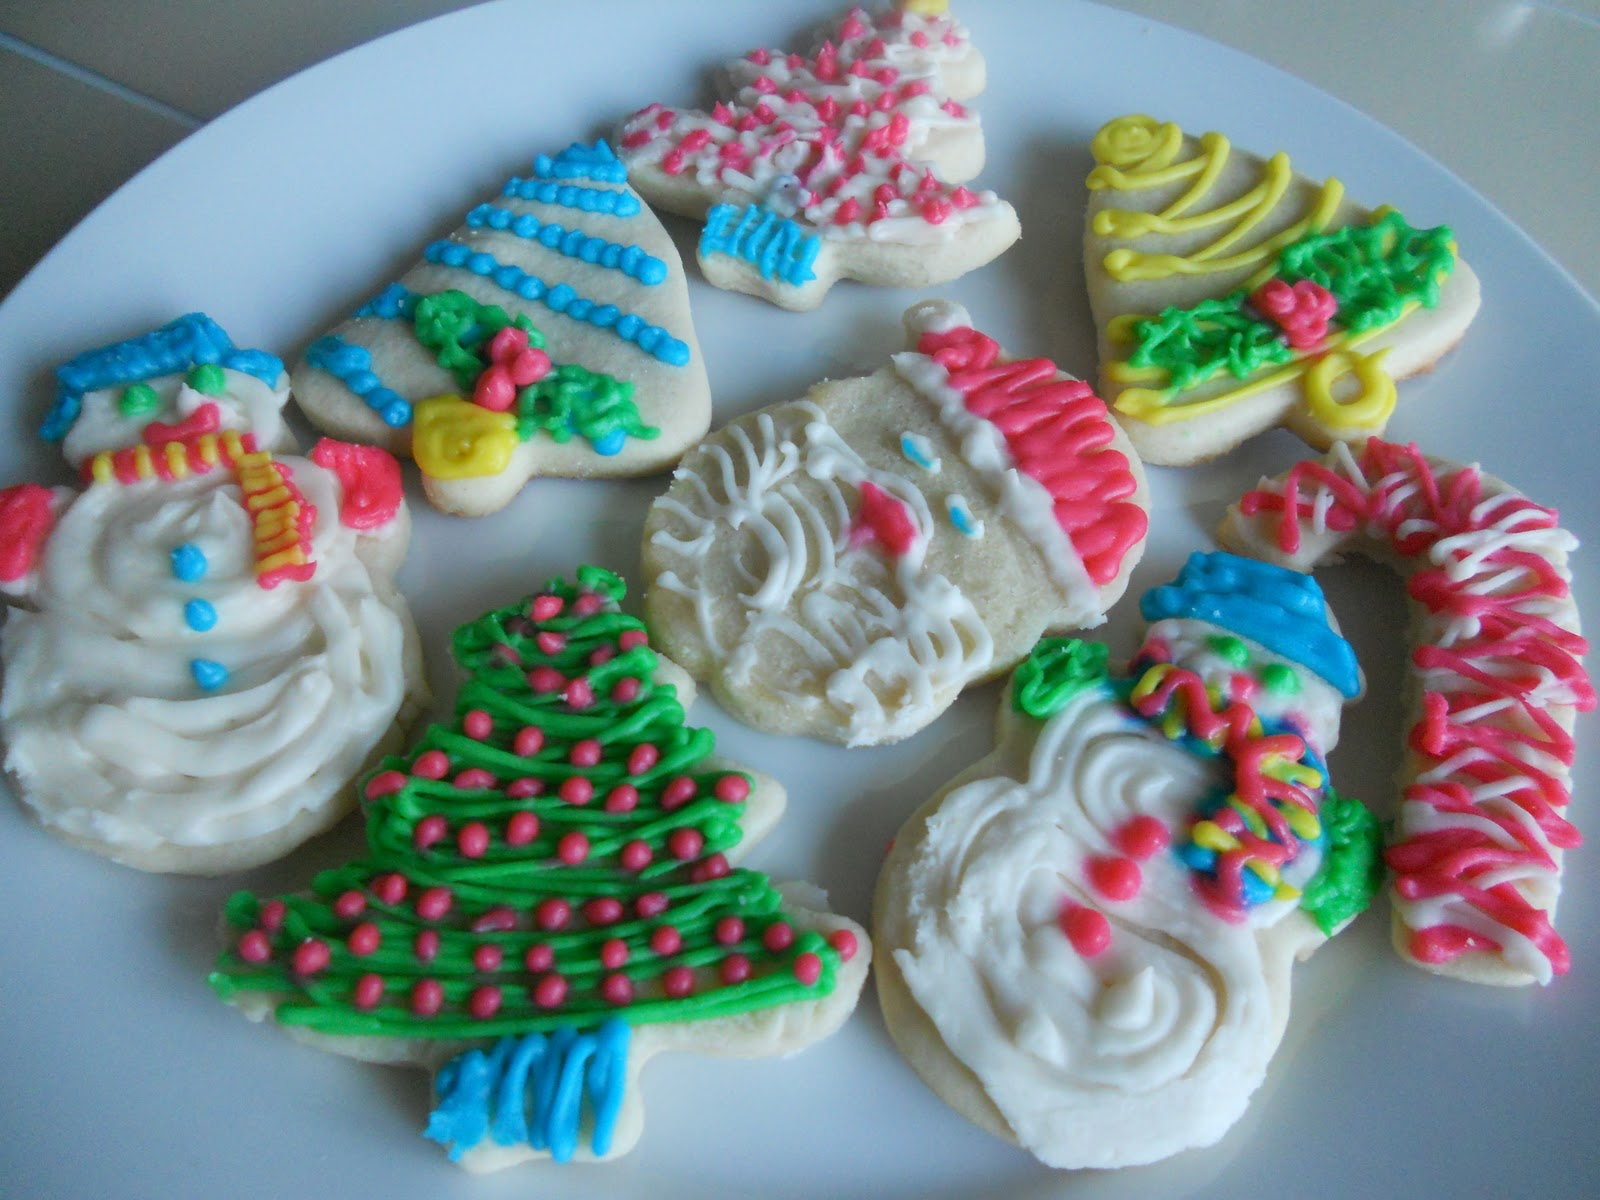 Christmas Cut Out Cookies.The Cafe At The Little Yellow House Frosted Christmas Cut